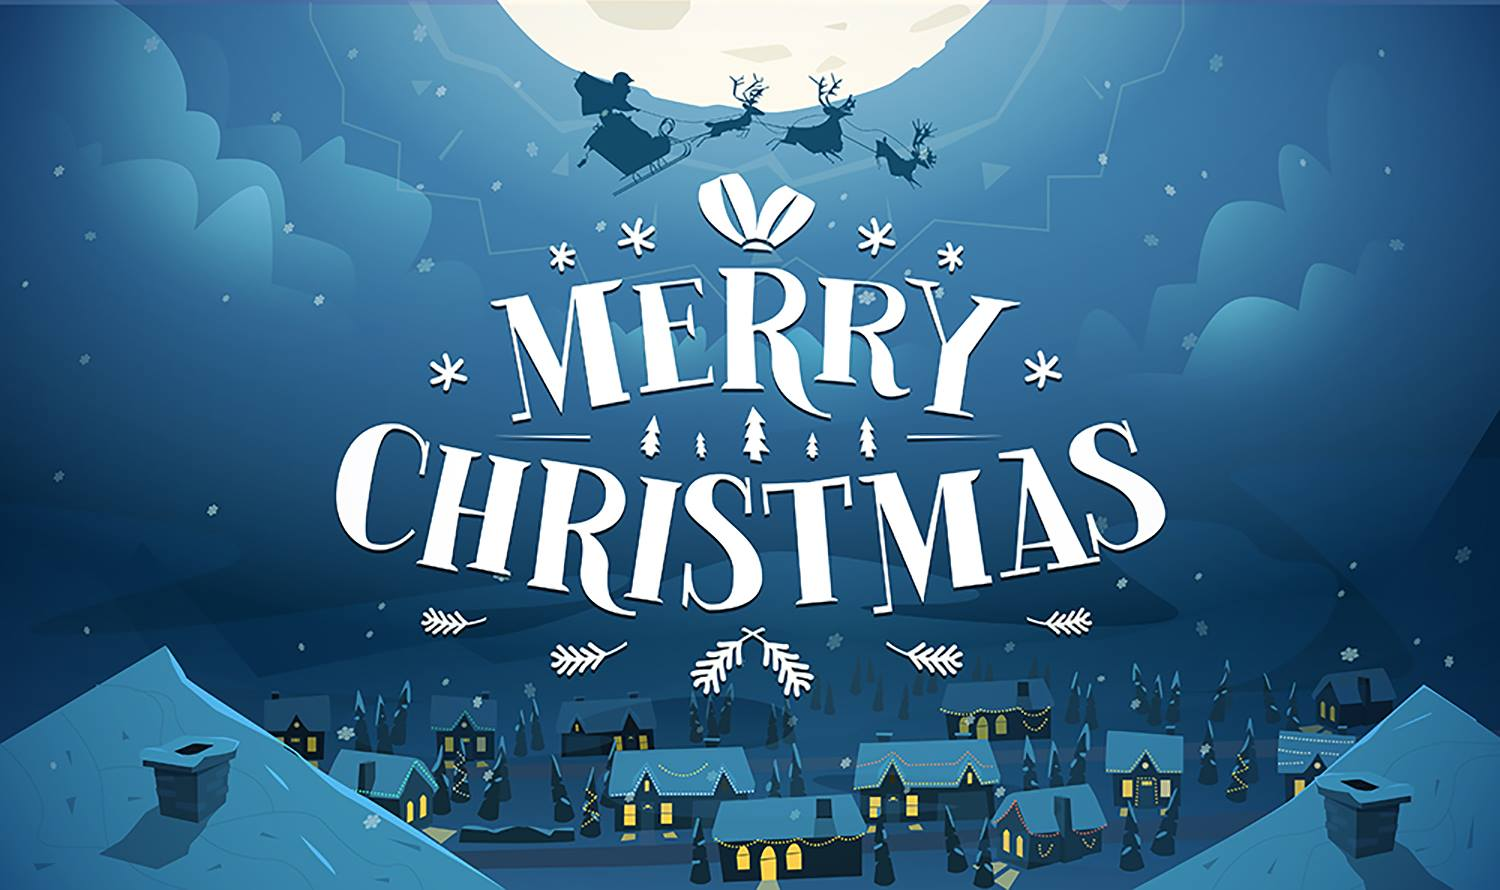 Merry Christmas Everyone >> Merry Christmas Everyone Manchester Storm